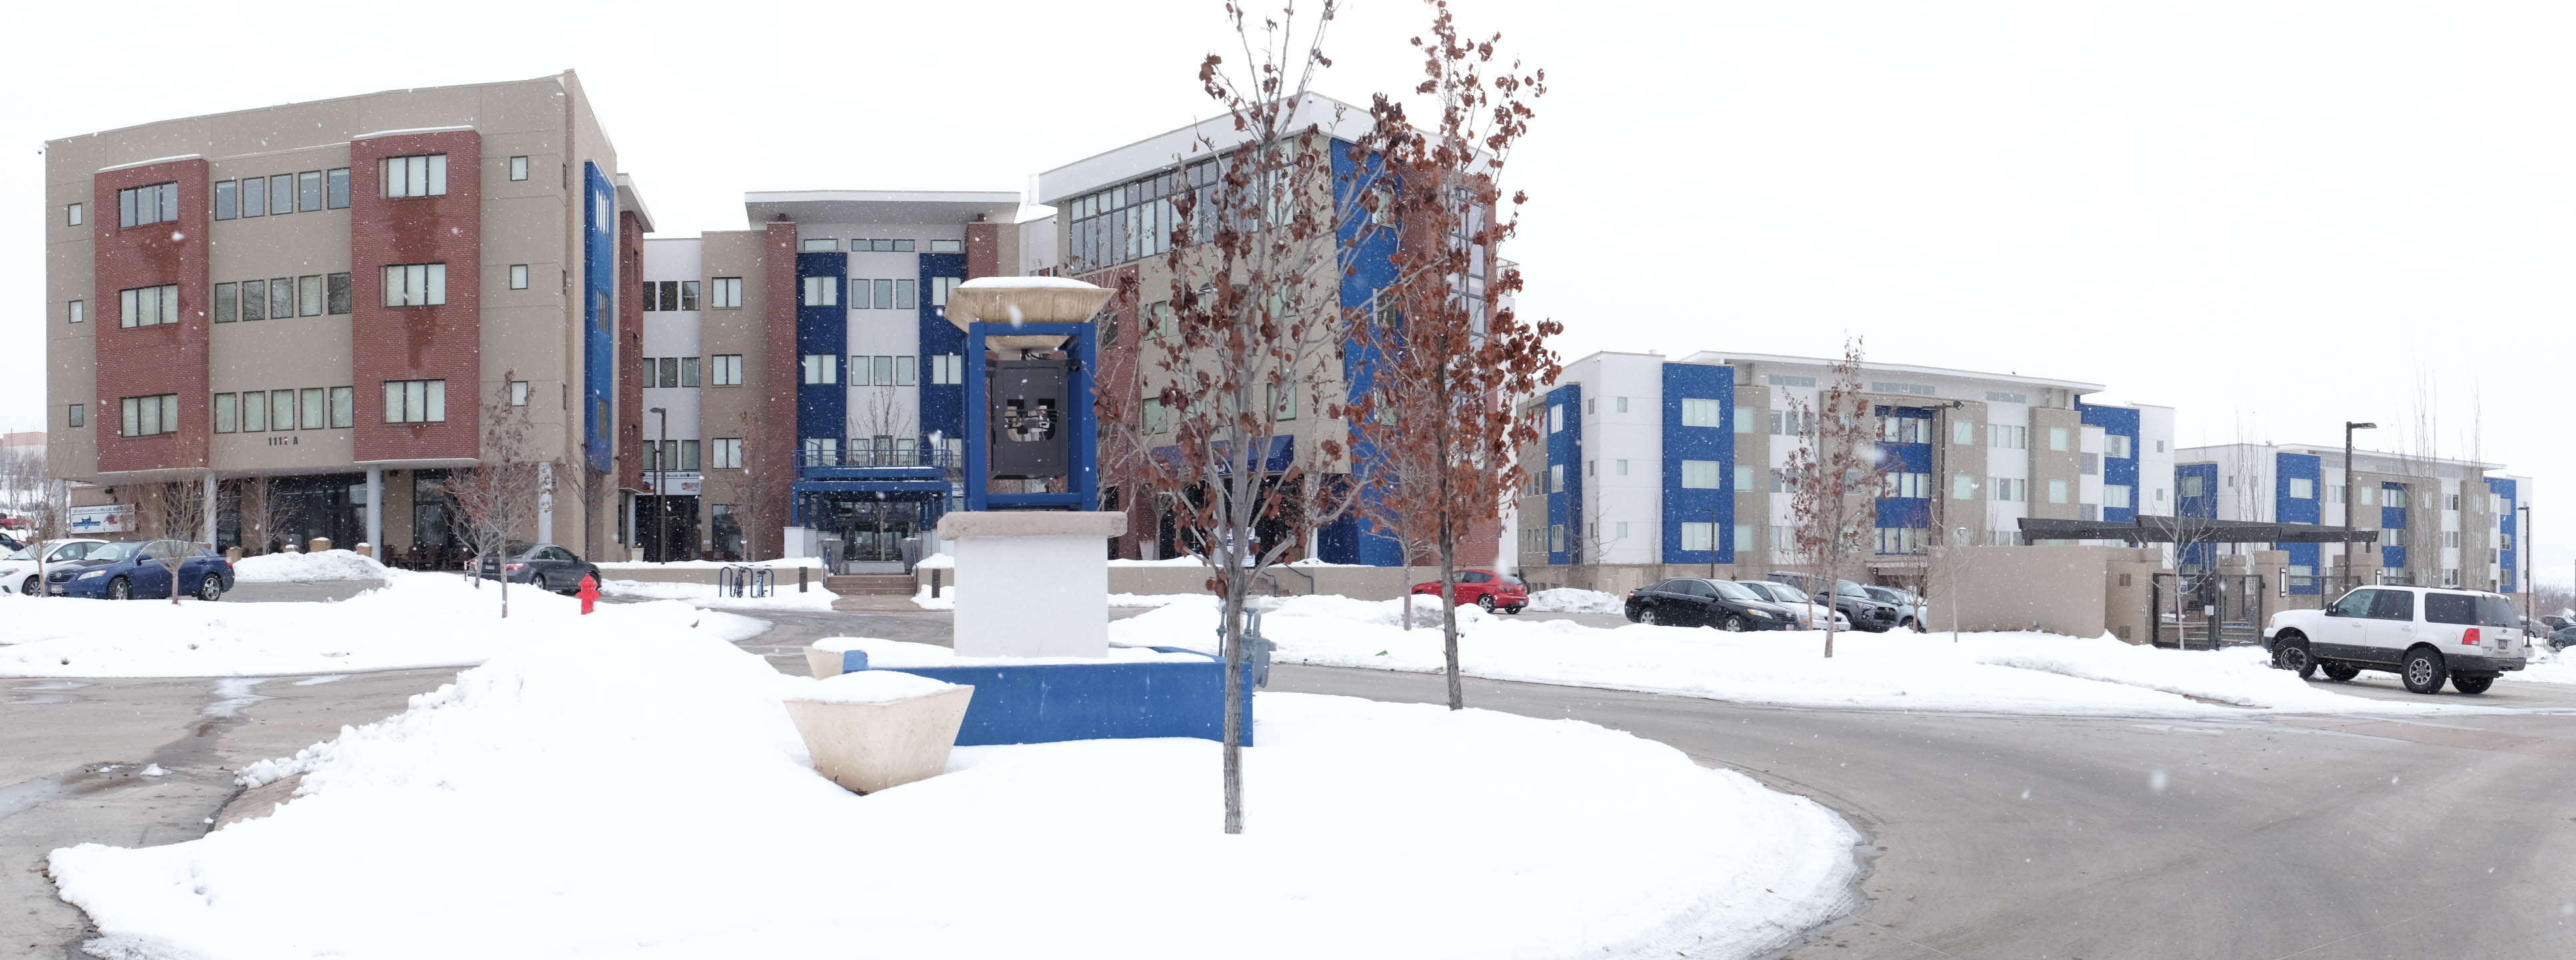 Blue Square Housing Gets Bluer After Purchase By Usu The Utah Statesman